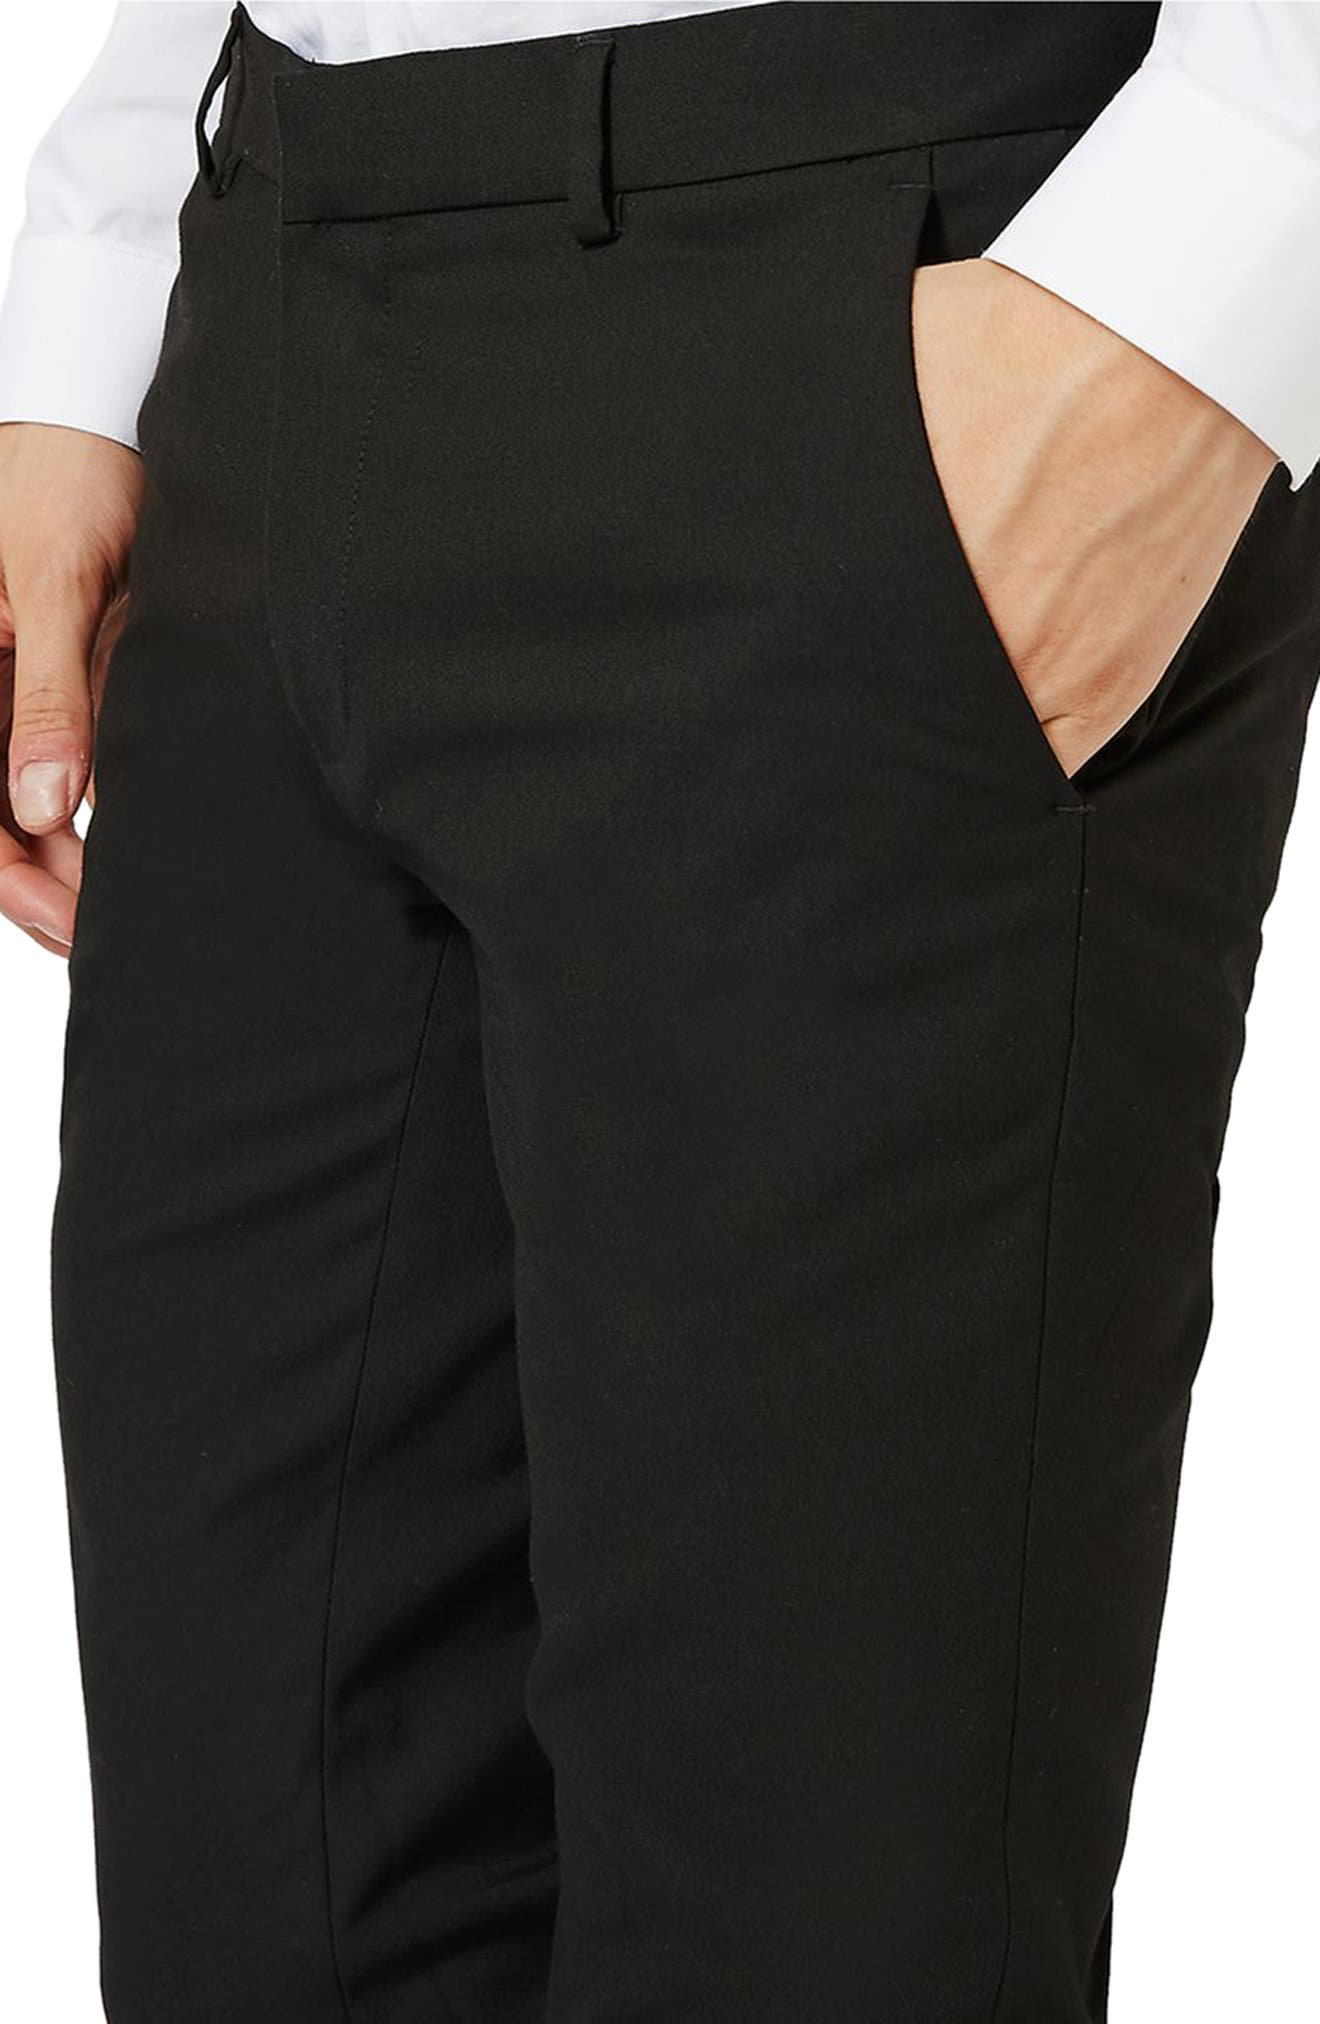 Skinny Fit Pants,                             Alternate thumbnail 3, color,                             Black